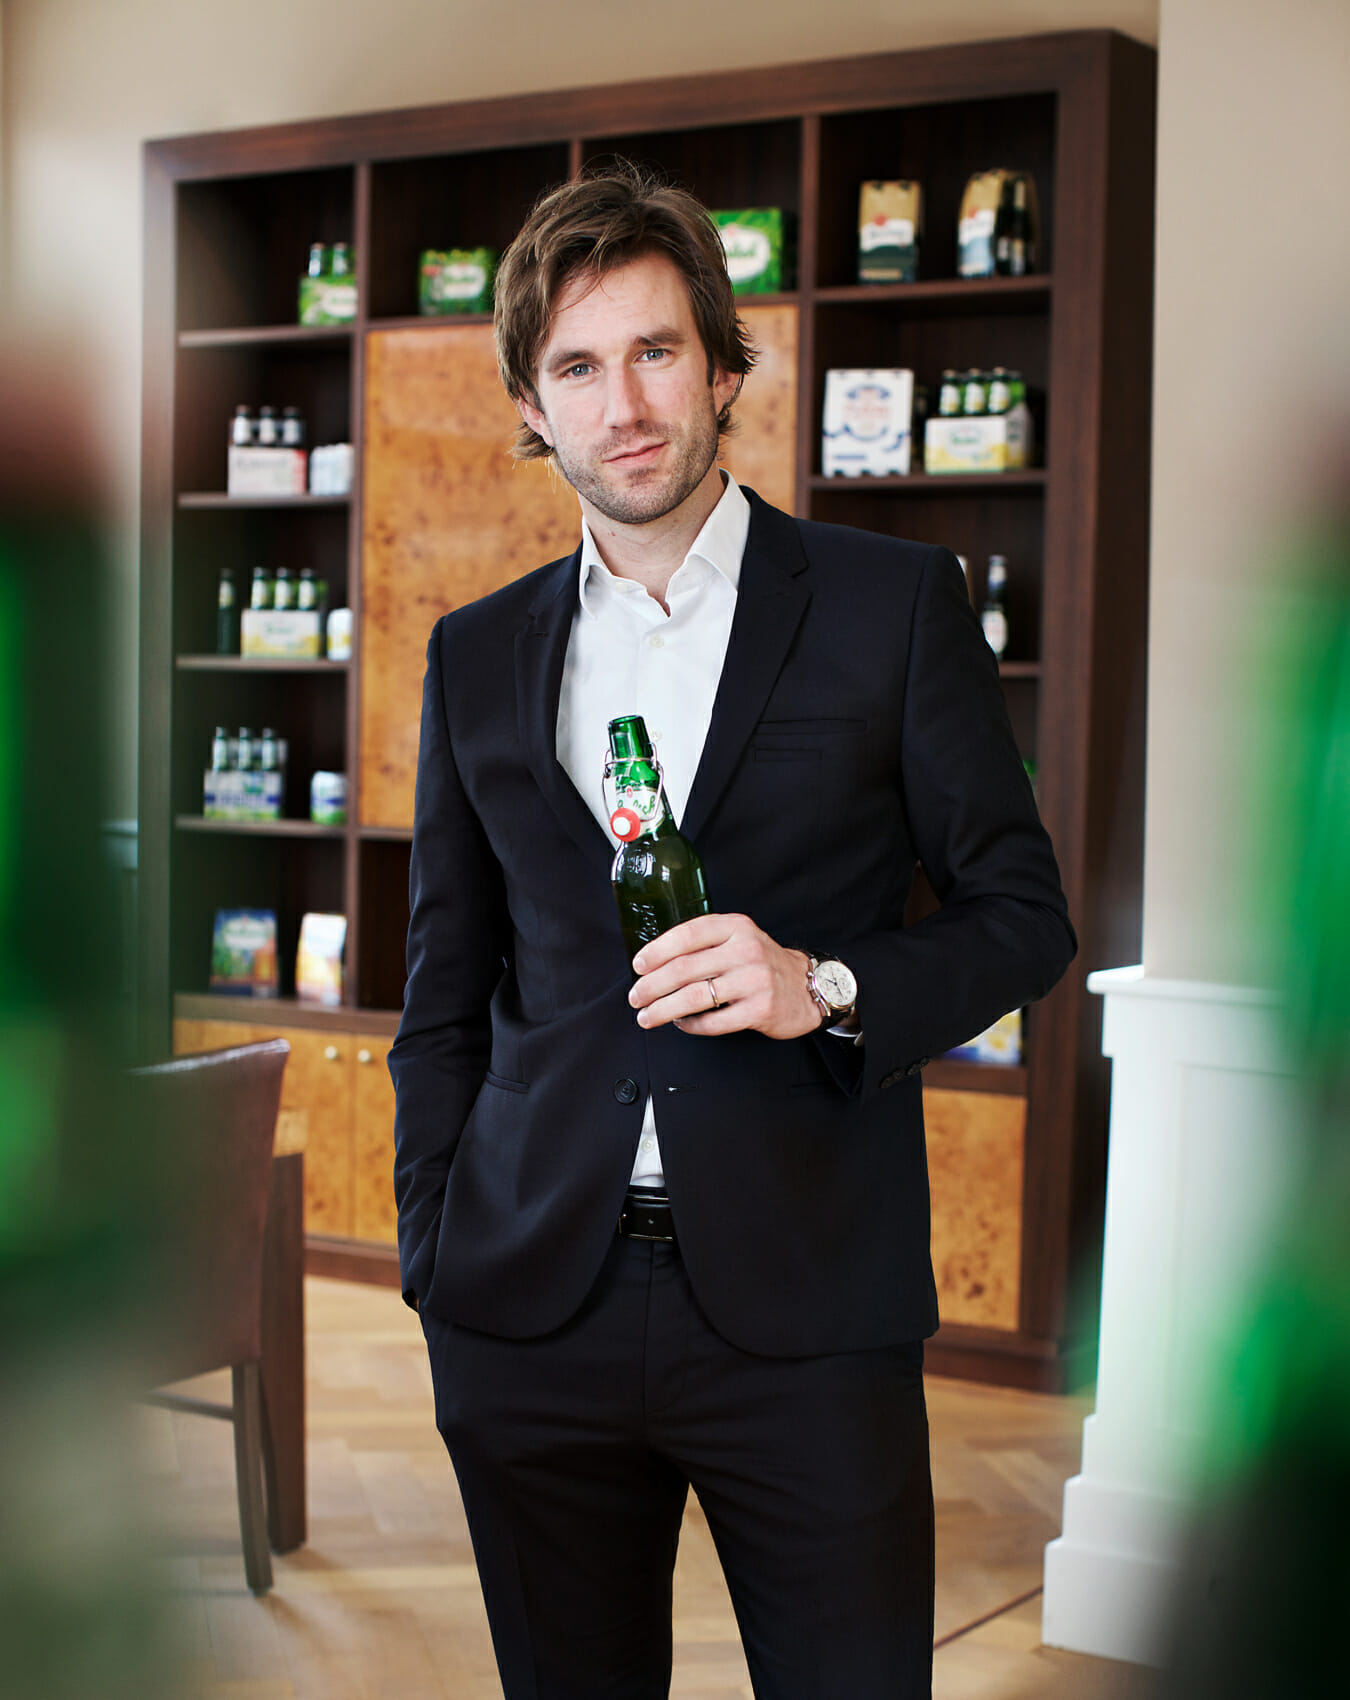 Portret Grolsch marketing manager Bob Rog in opdracht van Top of Minds